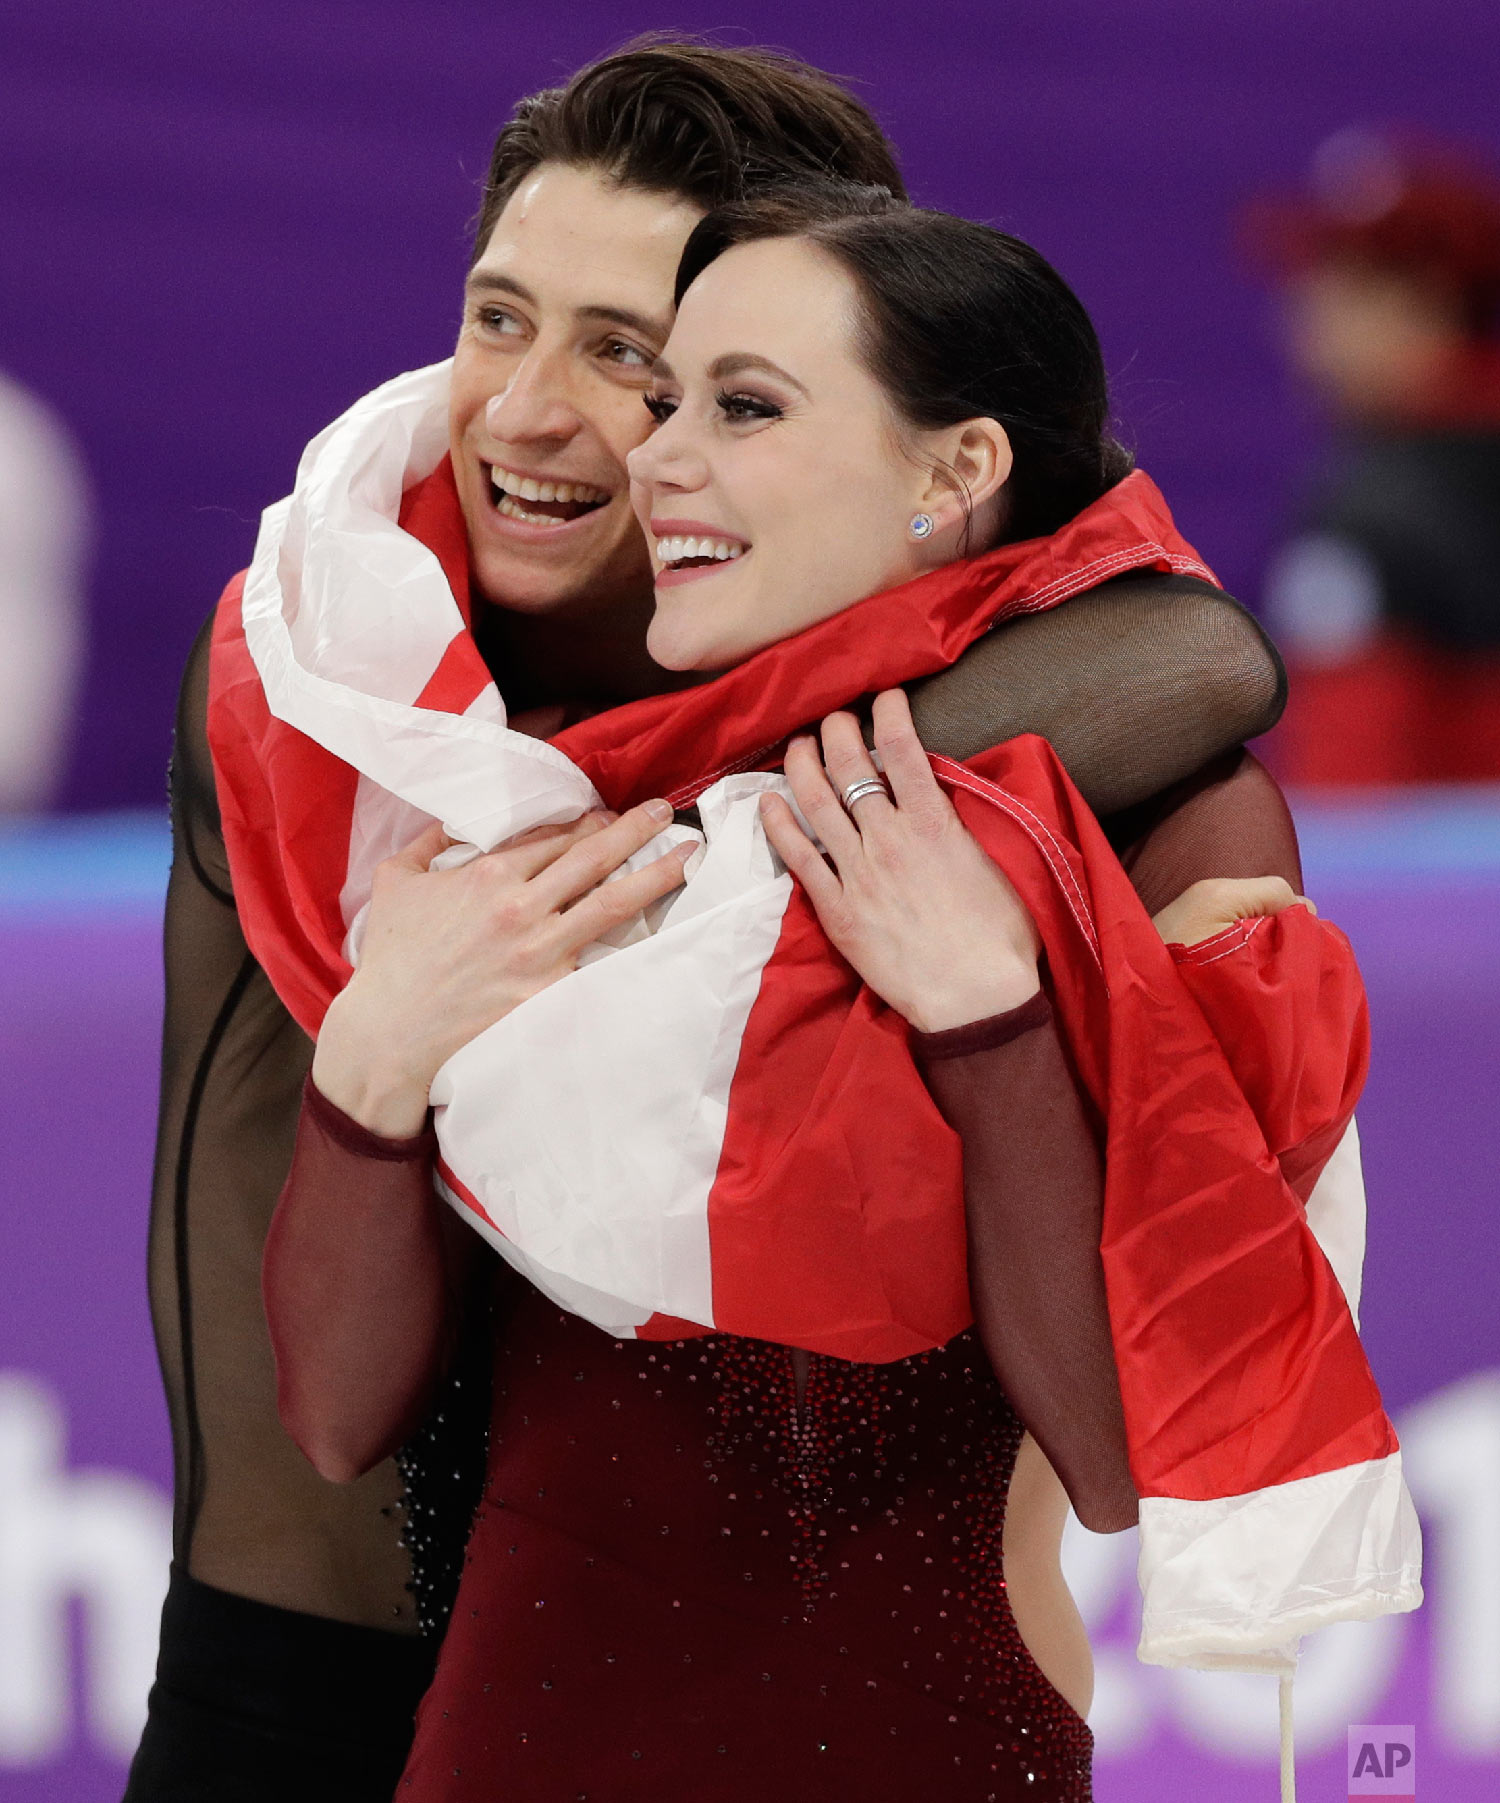 Tessa Virtue and Scott Moir of Canada celebrate during the venue ceremony after winning the gold medal in the ice dance, free dance figure skating final at the 2018 Winter Olympics in Gangneung, South Korea, on Feb. 20, 2018. (AP Photo/David J. Phillip)